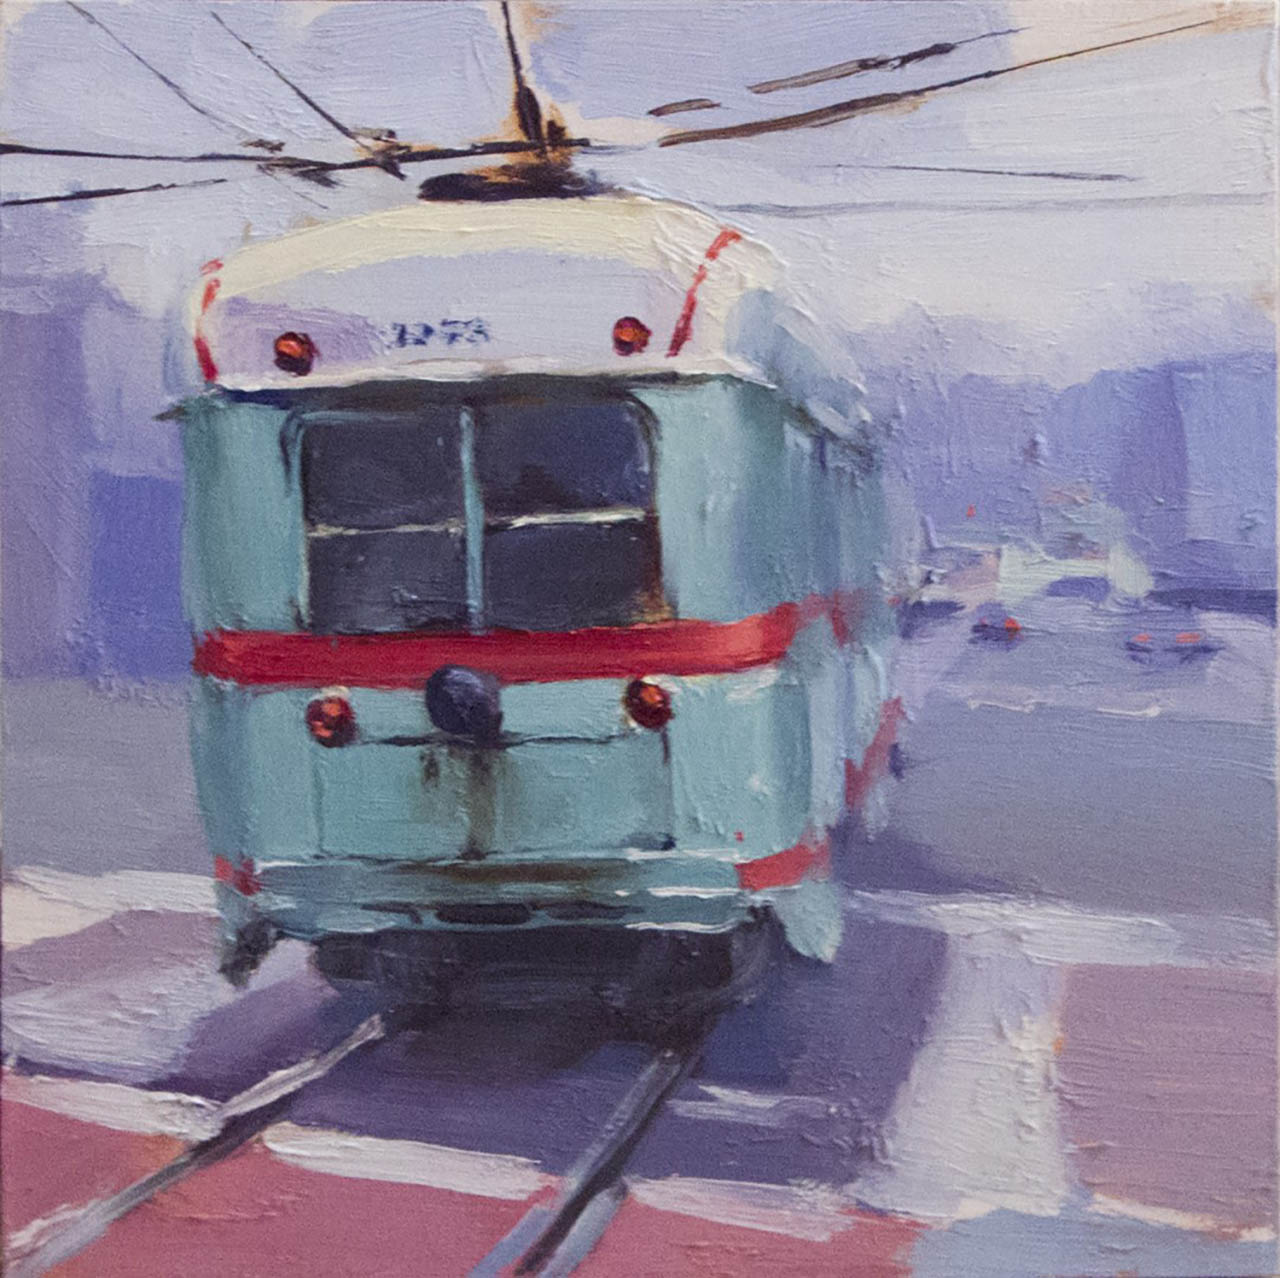 Muni at Van Ness Ave, by Hsing-Yu Chen